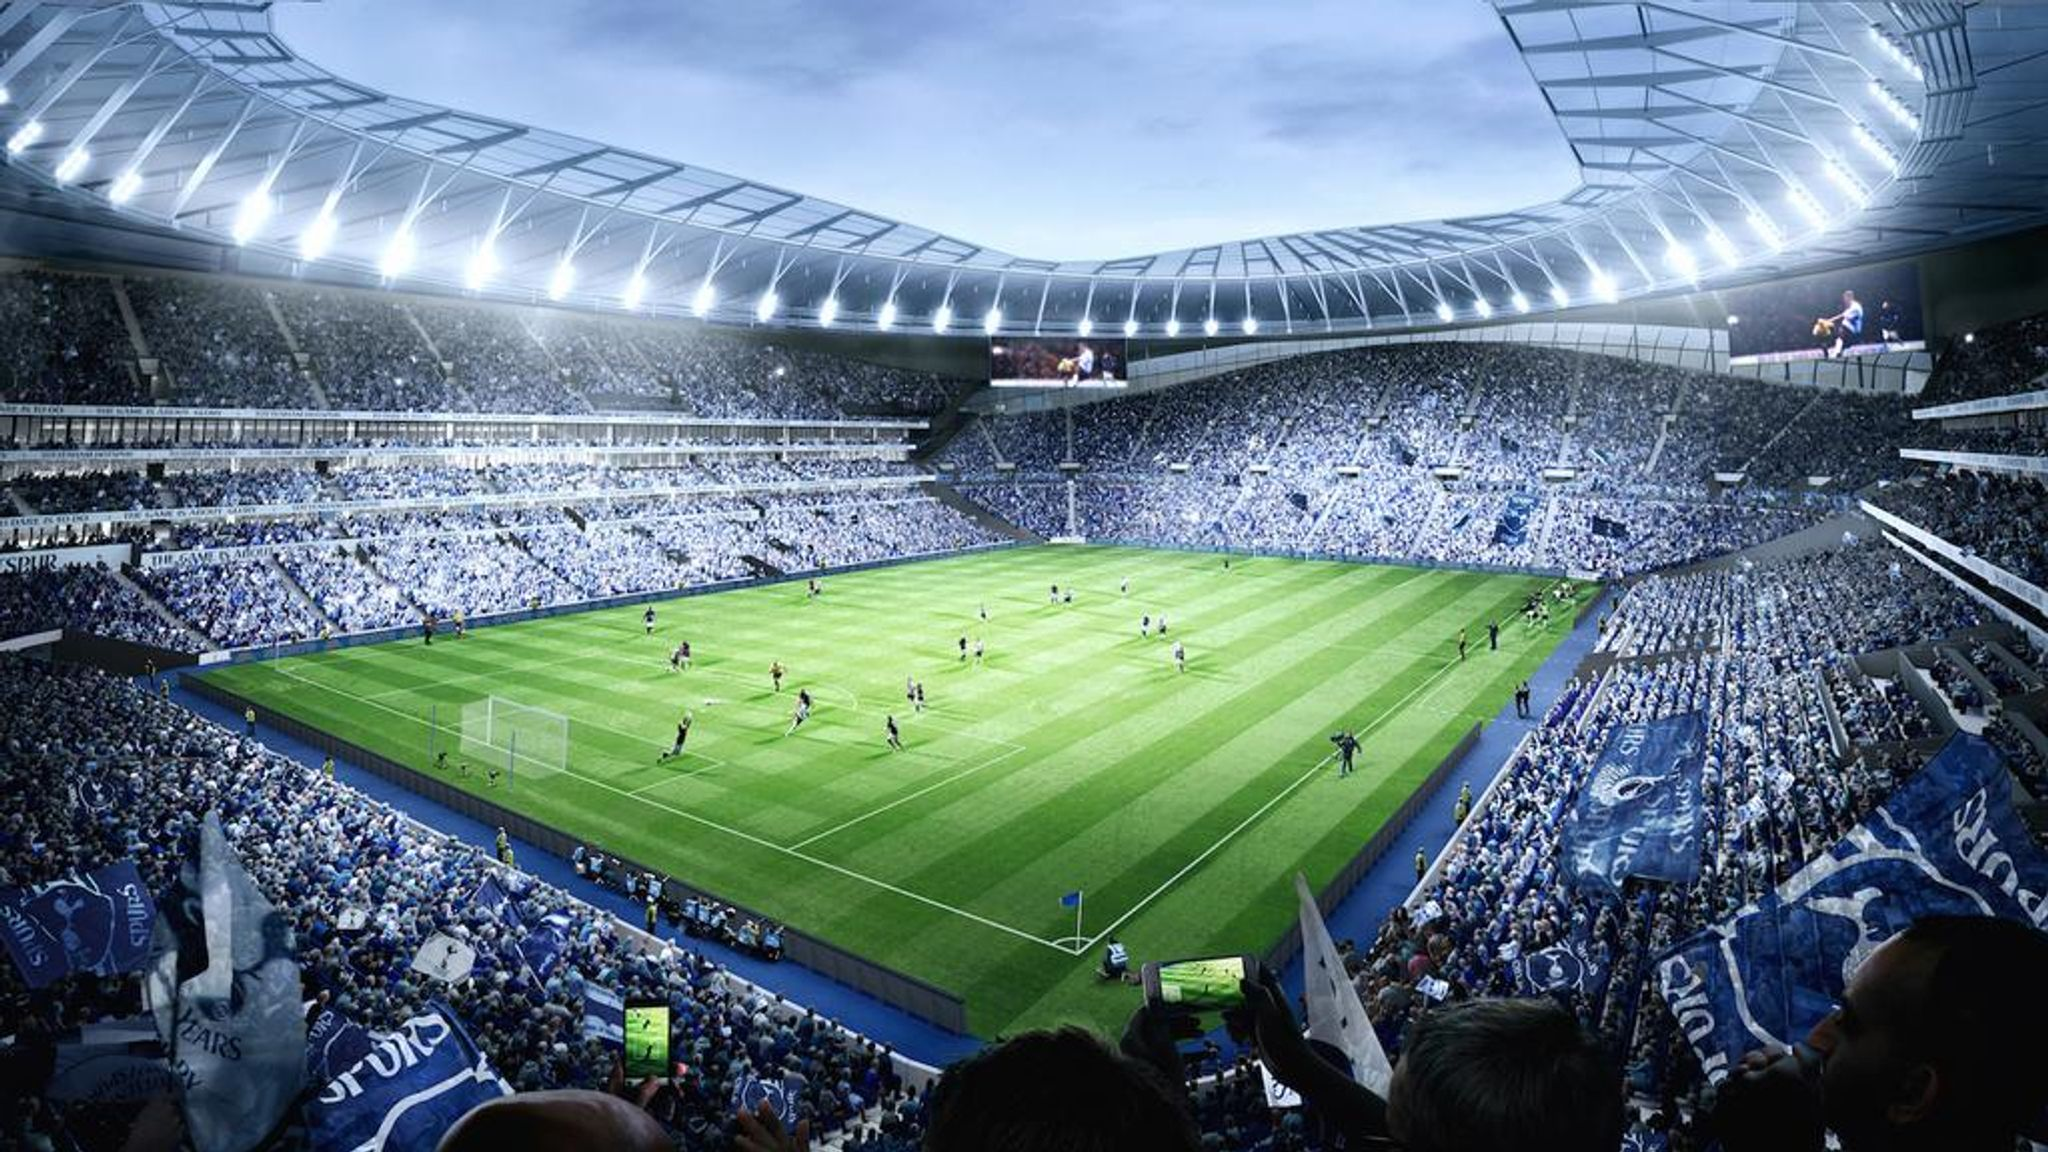 New Football Stadiums The Next Generation Of Venues Football